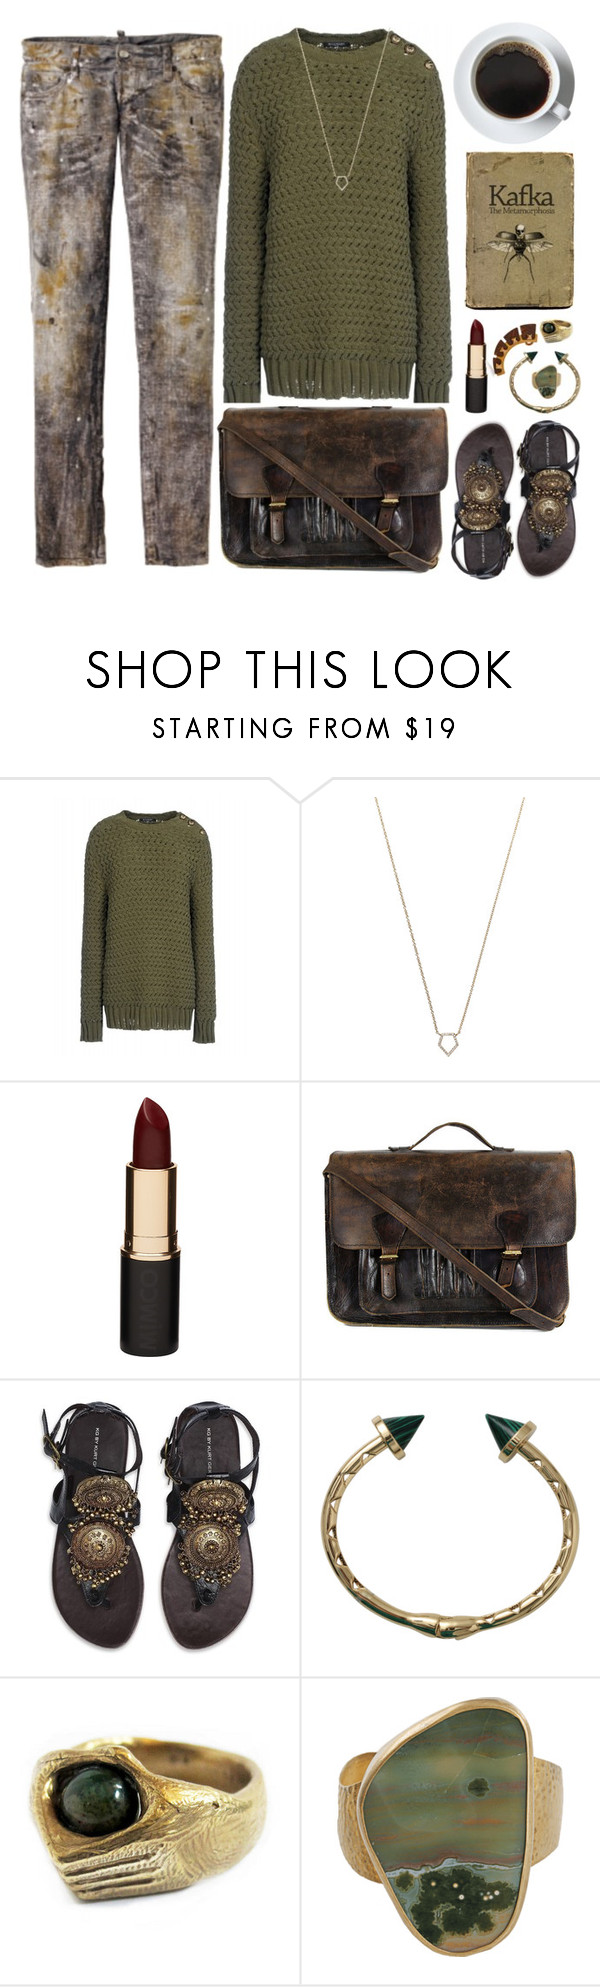 """""""Untitled VIII"""" by captainsolo ❤ liked on Polyvore featuring Balmain, Dsquared2, Monique Péan, Mimco, Priestley's Vintage, Kurt Geiger, Eddie Borgo, Leah Ball, Caterina Zangrando and Gogreen"""